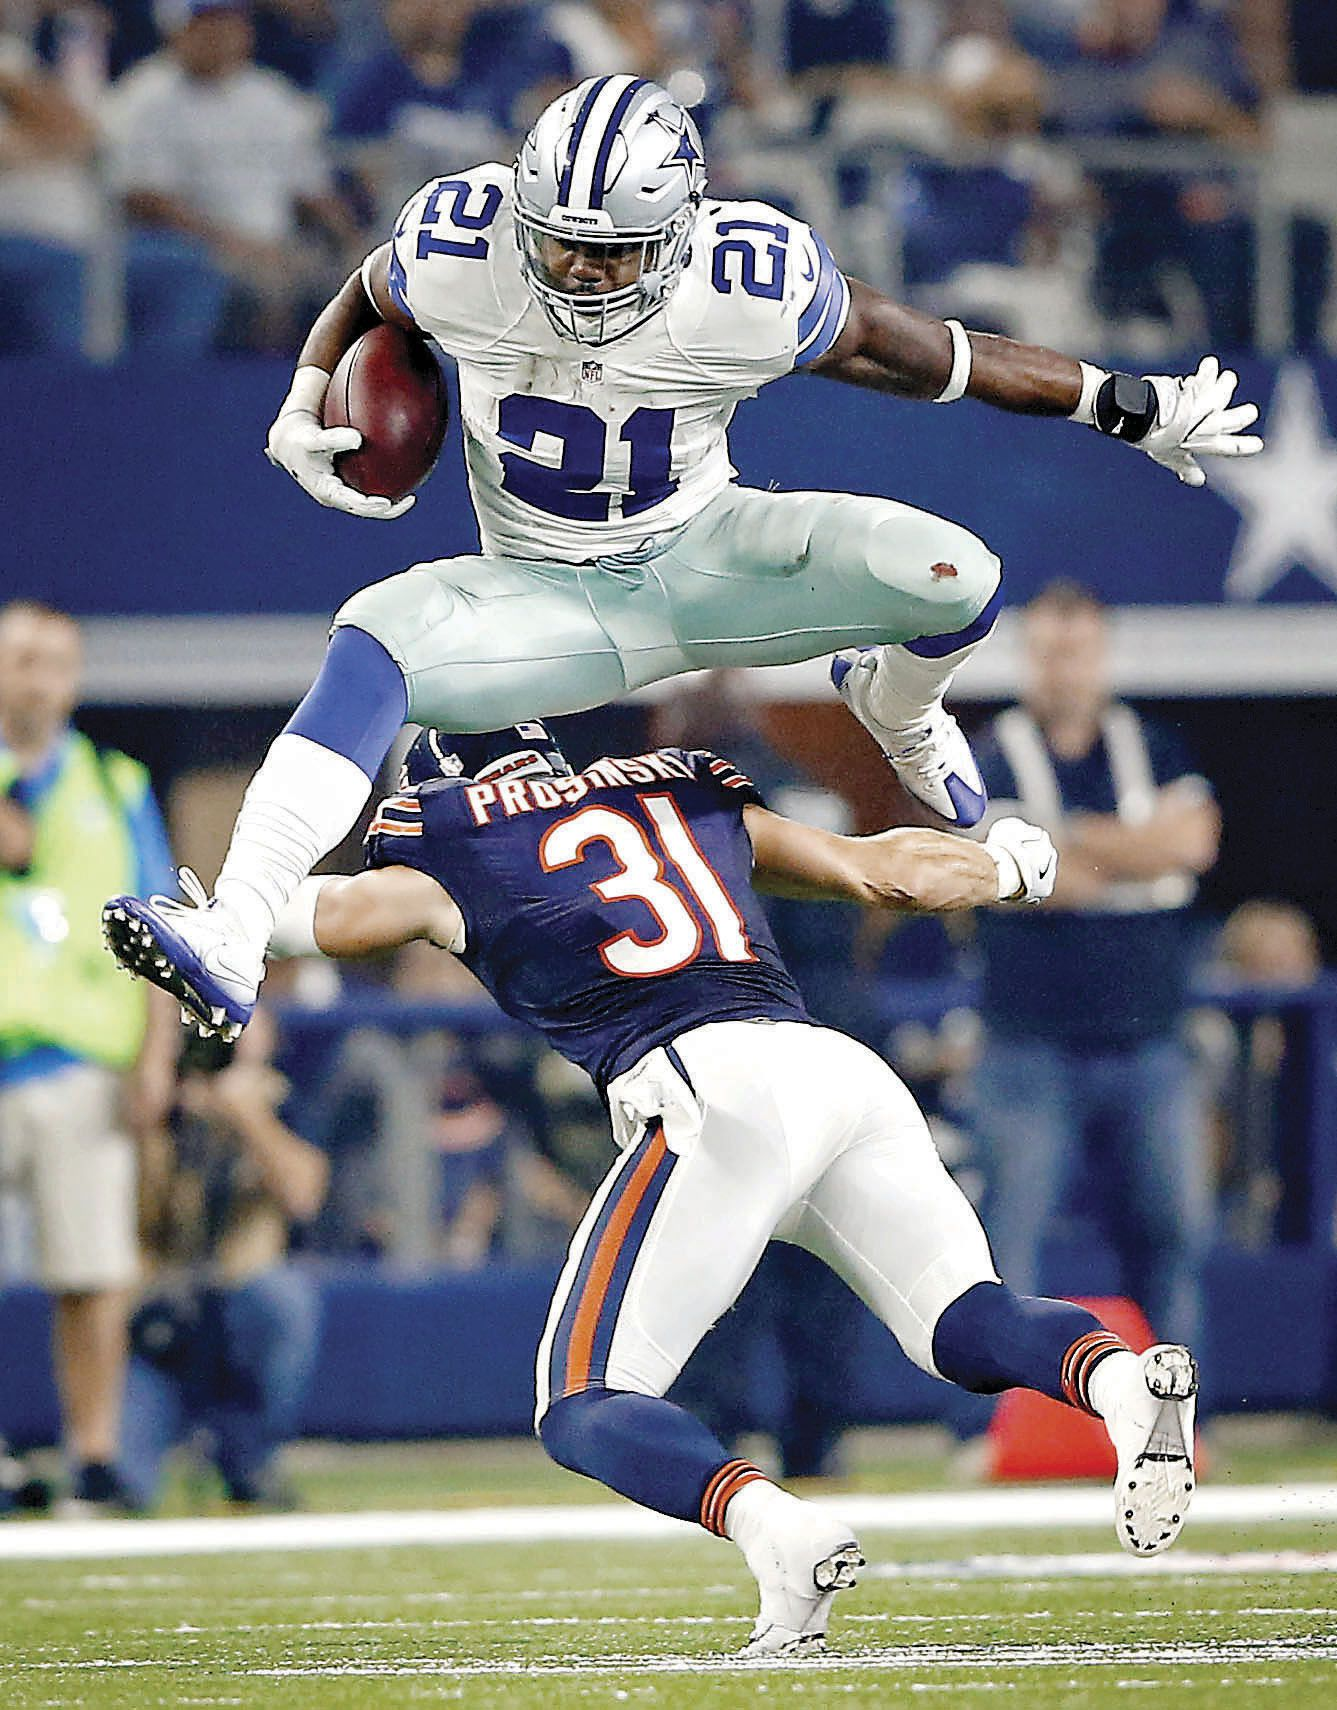 Dallas Cowboys rookie running back Ezekiel Elliott leaped over Chicago Bears safety Chris Prosinski on a run play at AT&T Stadium in Arlington on Sept. 25.